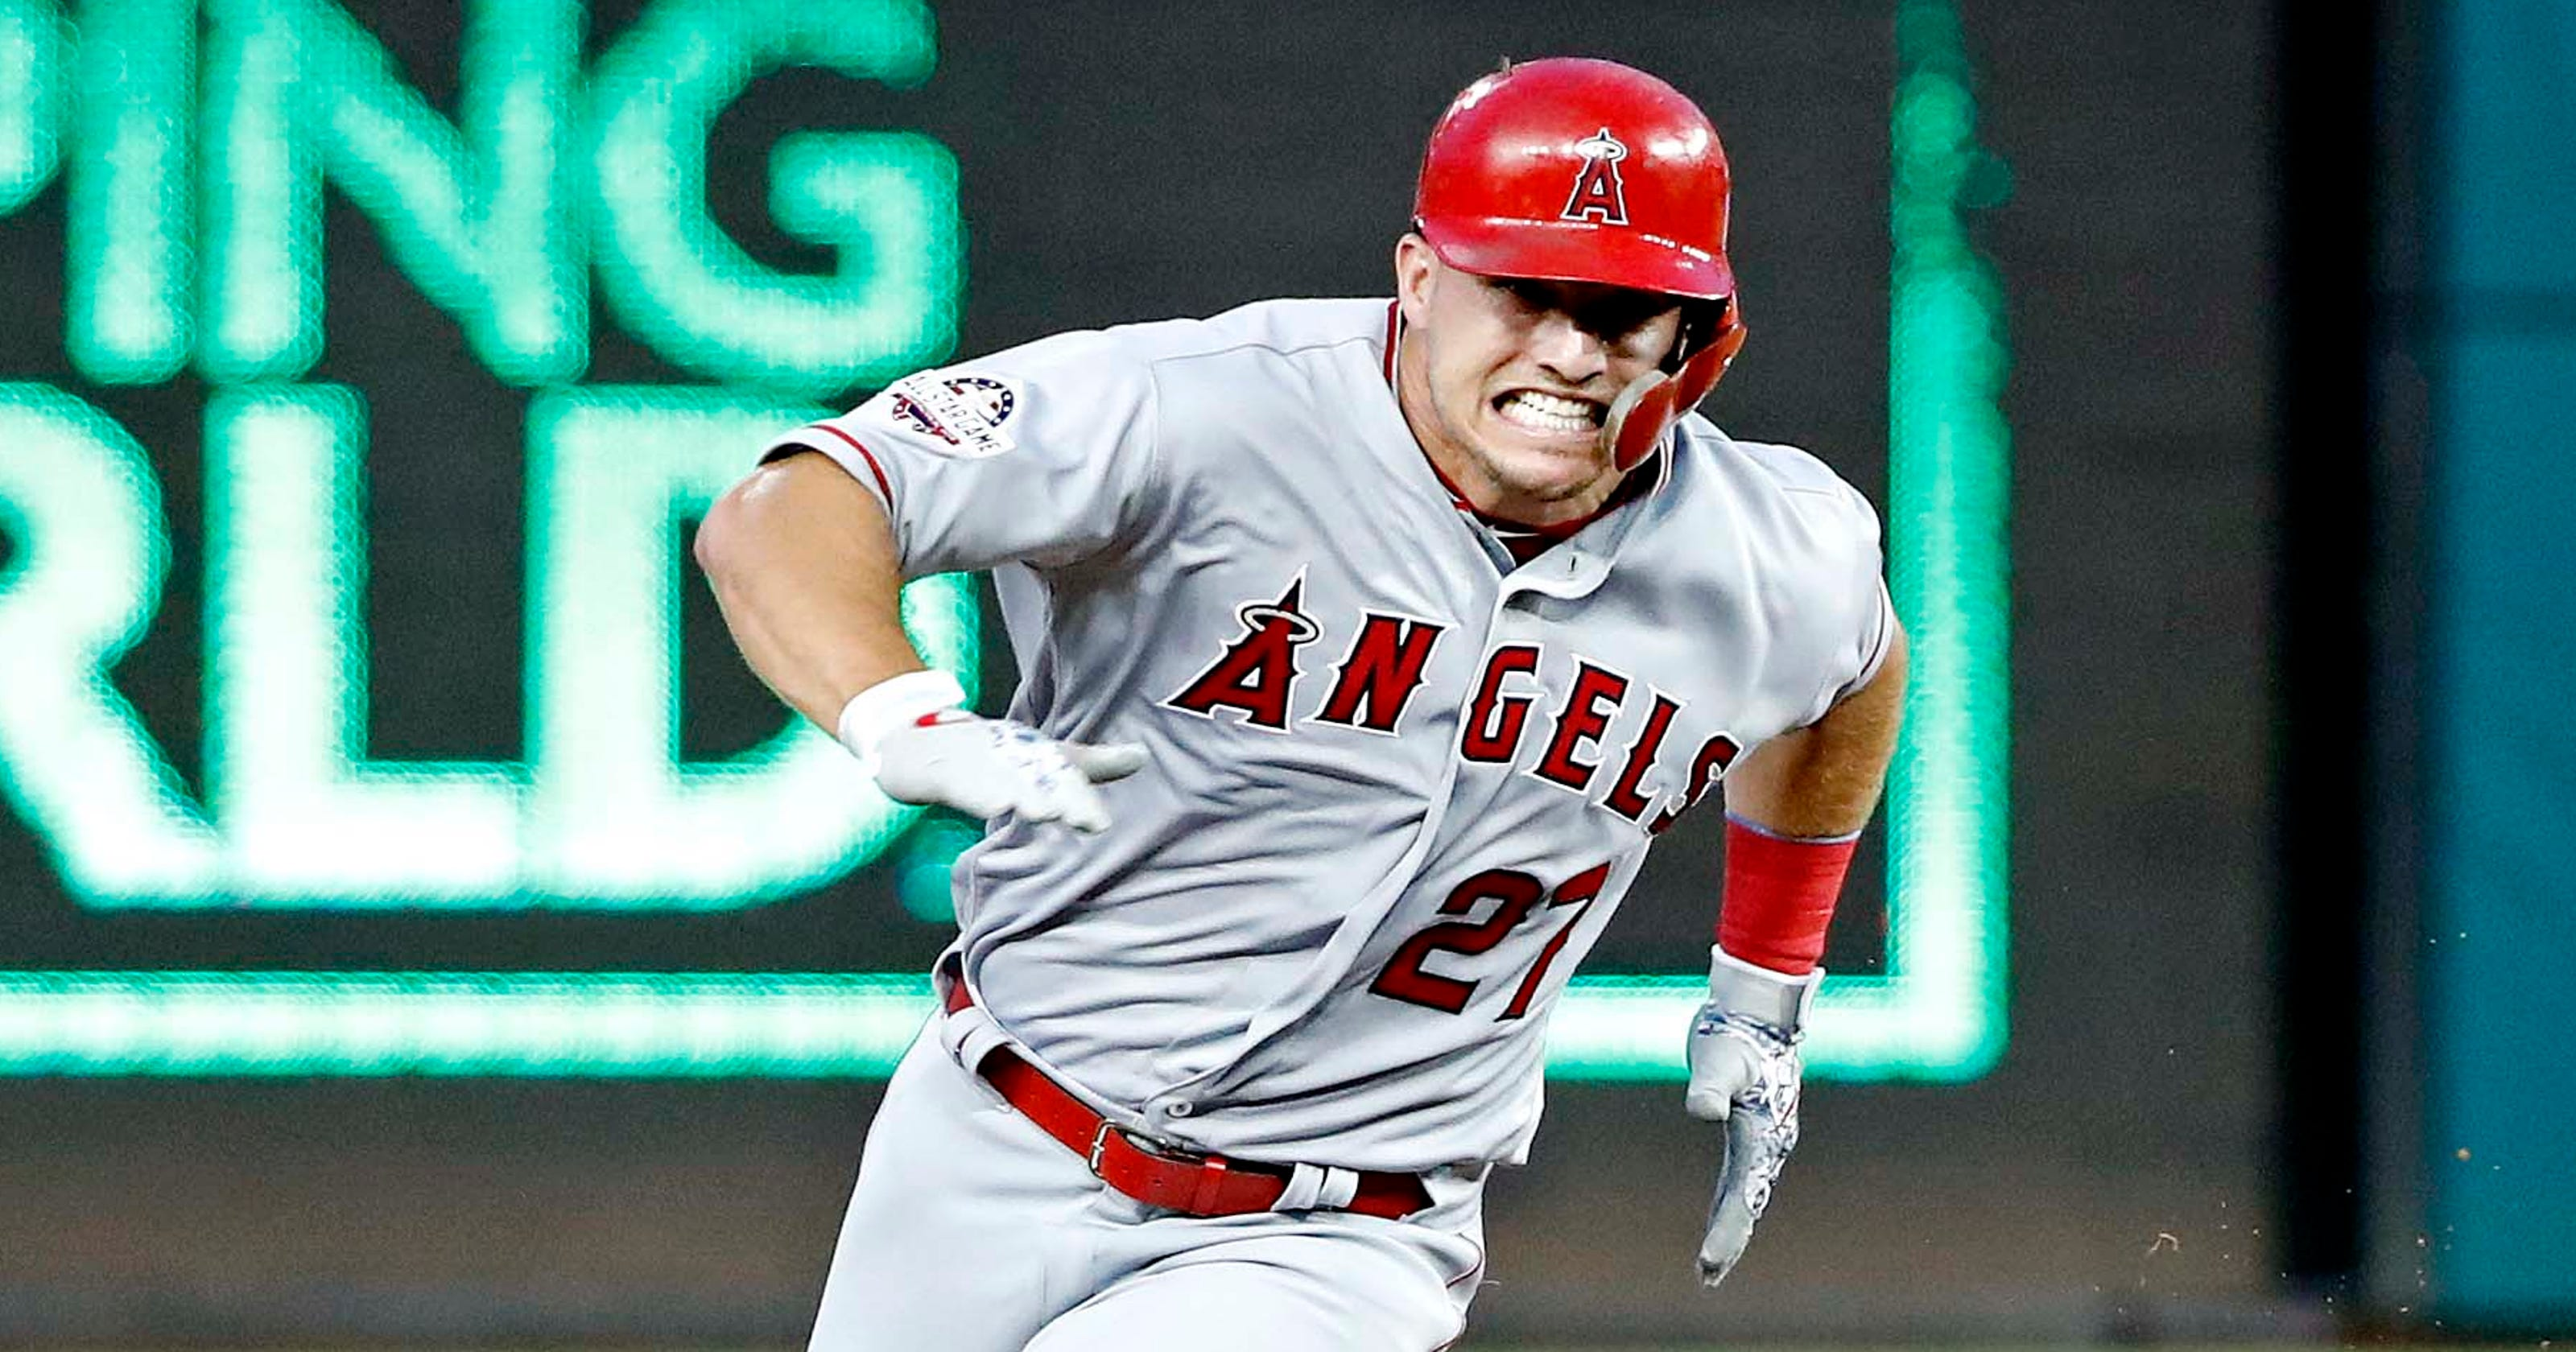 Don t blame Mike Trout for Major League Baseball s problems cd6ffa281